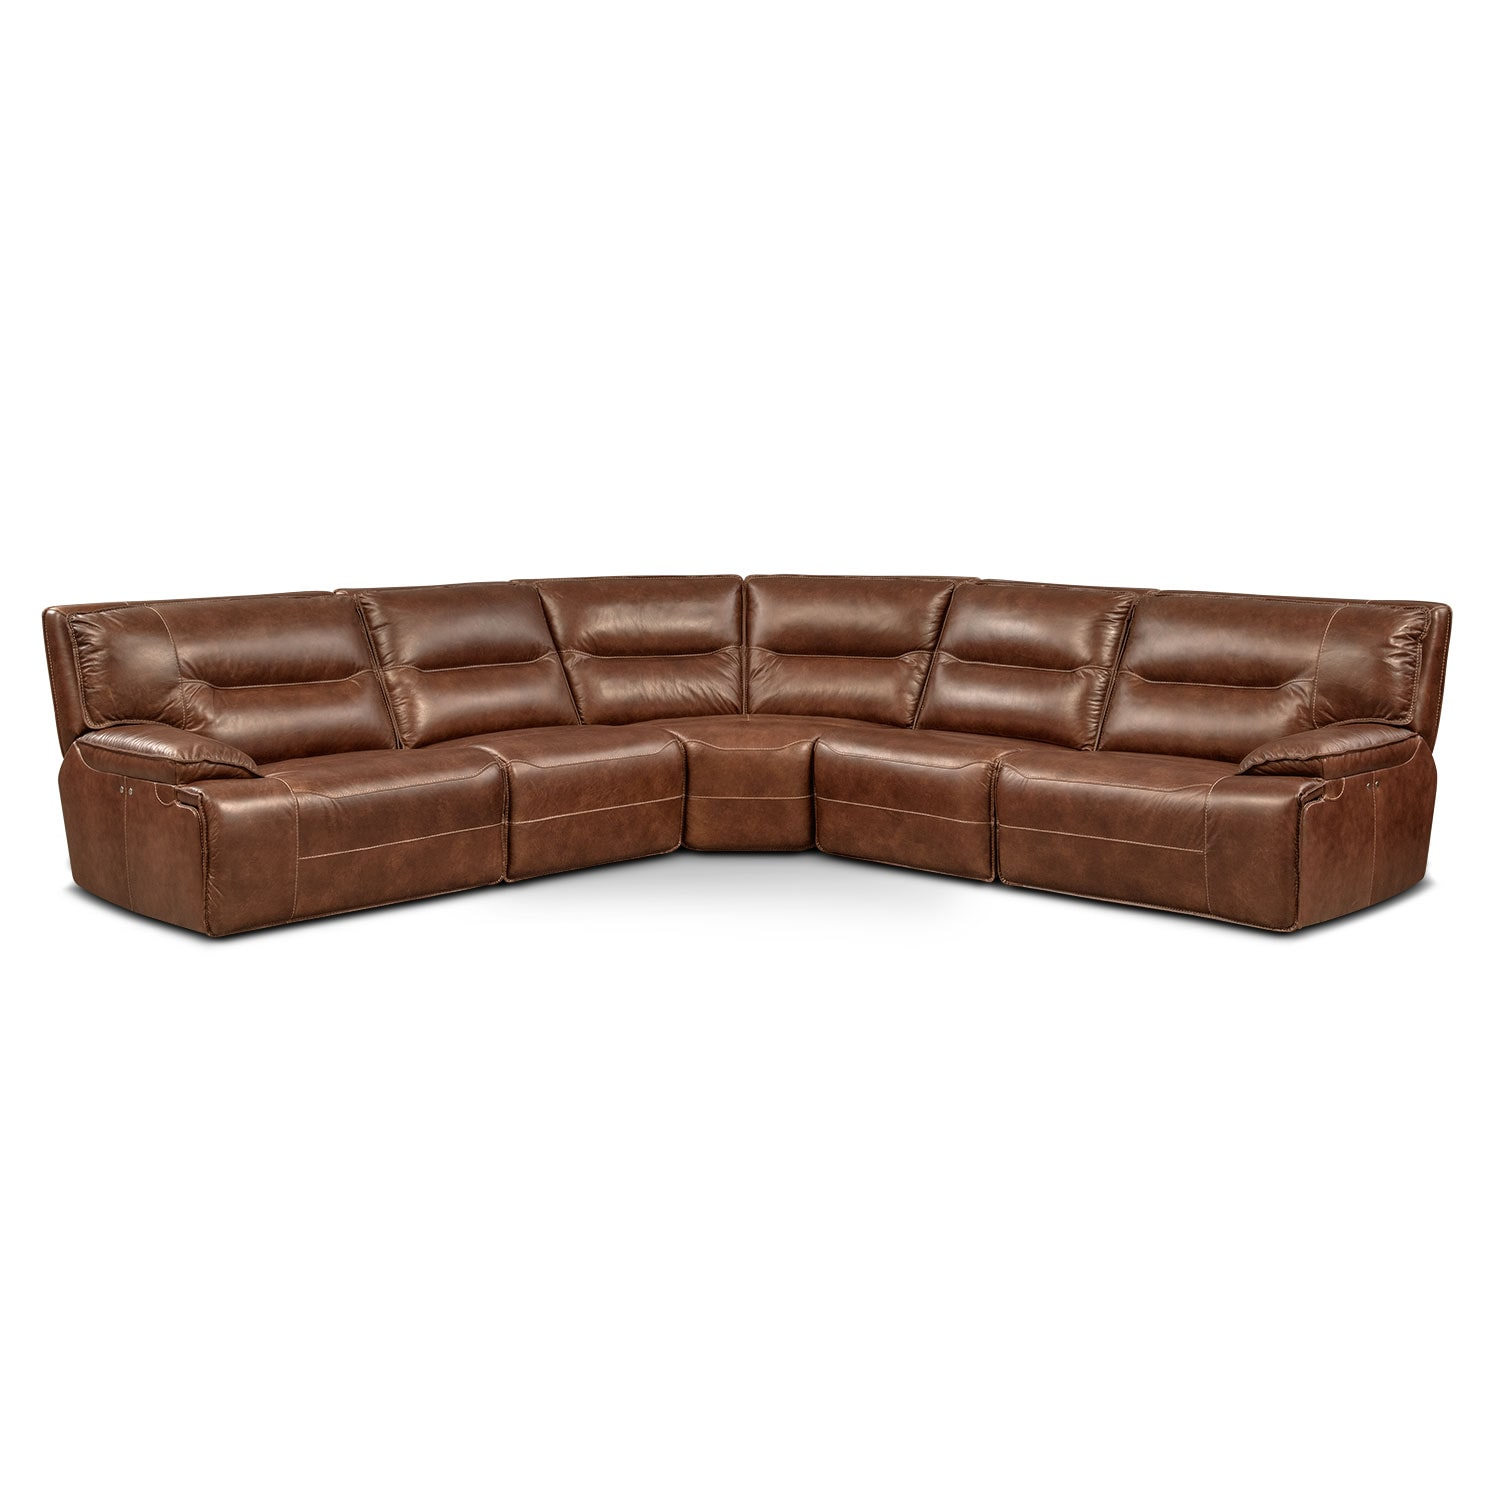 Living Room Furniture - Glenmont 5-Piece Power Reclining Sectional with 2 Recliners - Brown